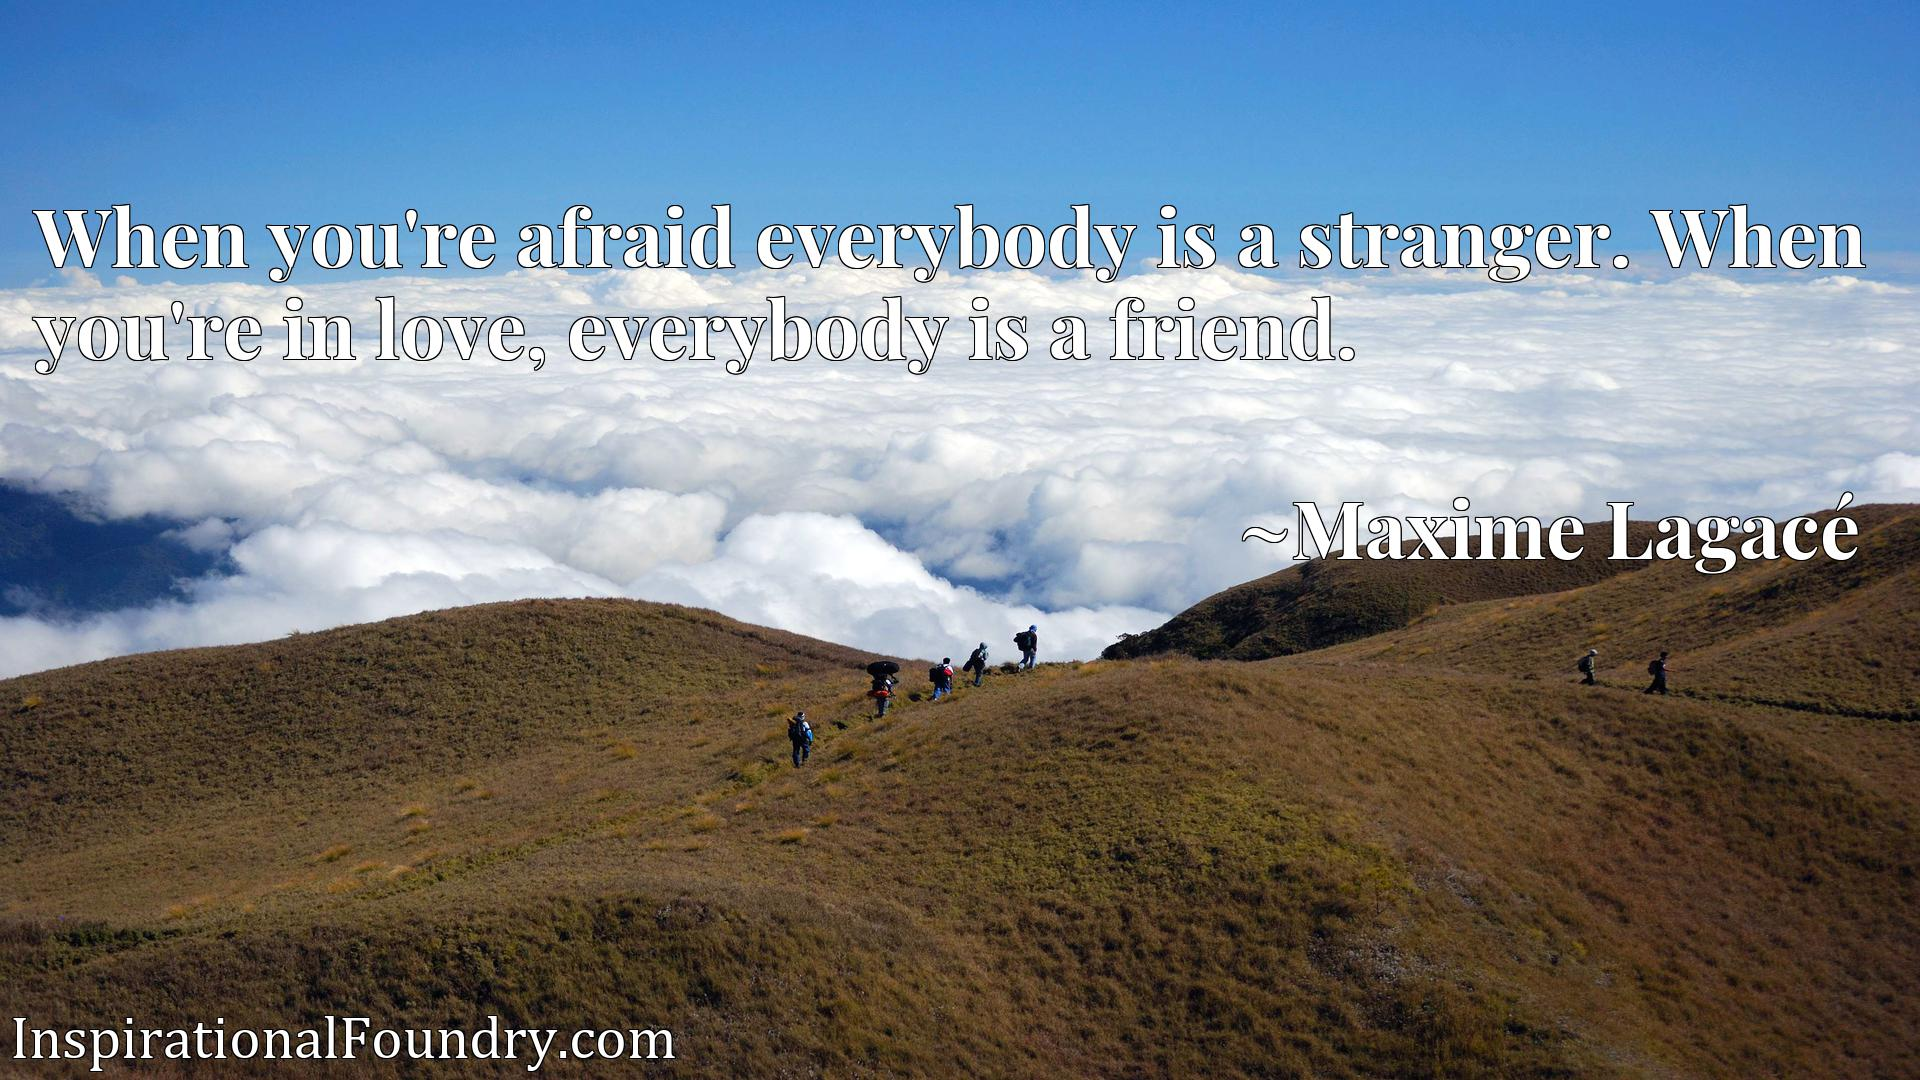 When you're afraid everybody is a stranger. When you're in love, everybody is a friend.